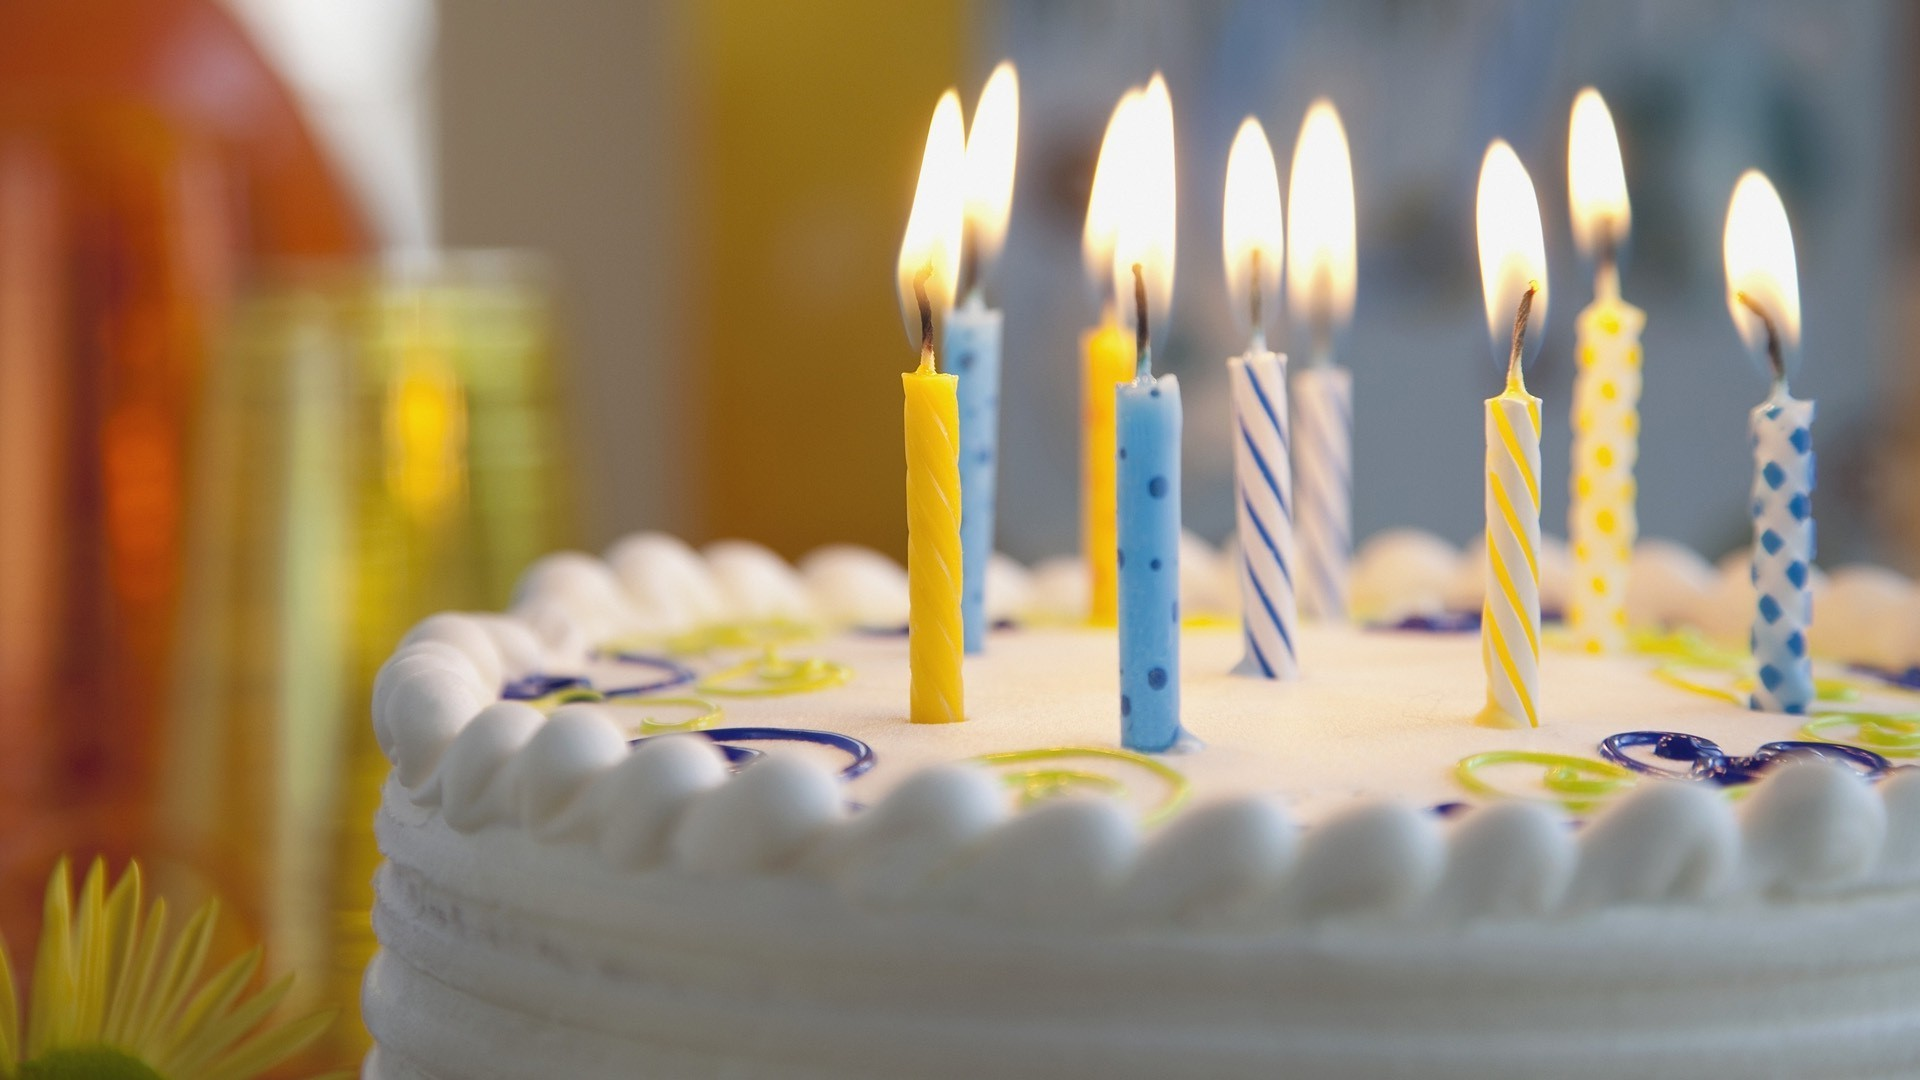 Download Birthday Cakes 6375 1920x1080 Px High Definition Wallpaper